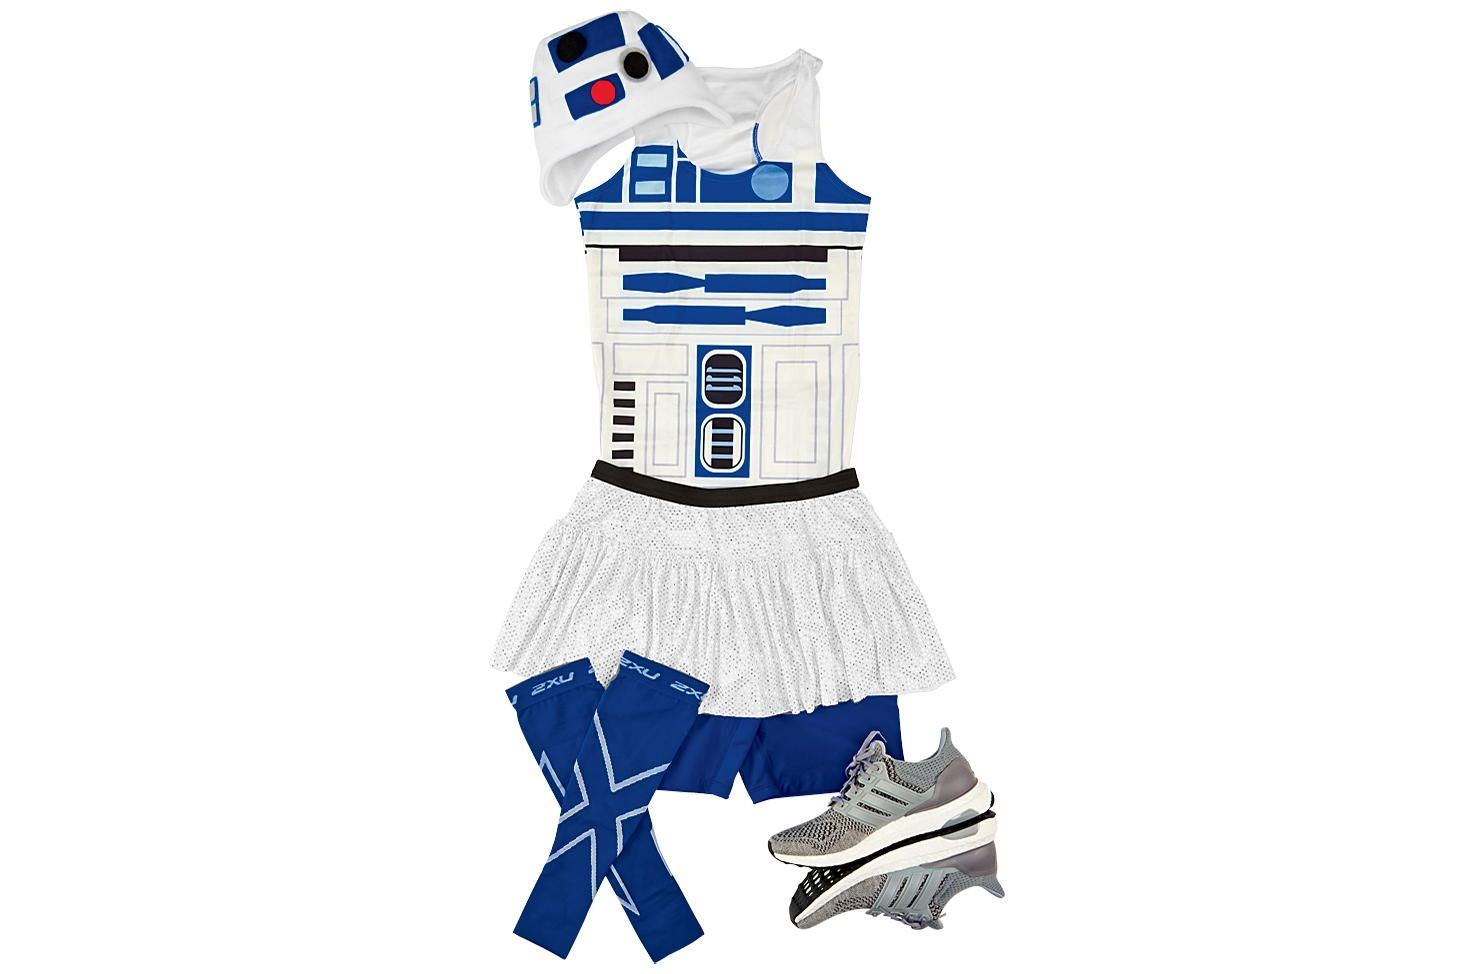 Star Wars-Themed Running Gear //.runnersworld.com/  sc 1 st  Pinterest & Star Wars-Themed Running Gear | Running gear Running and Running ...